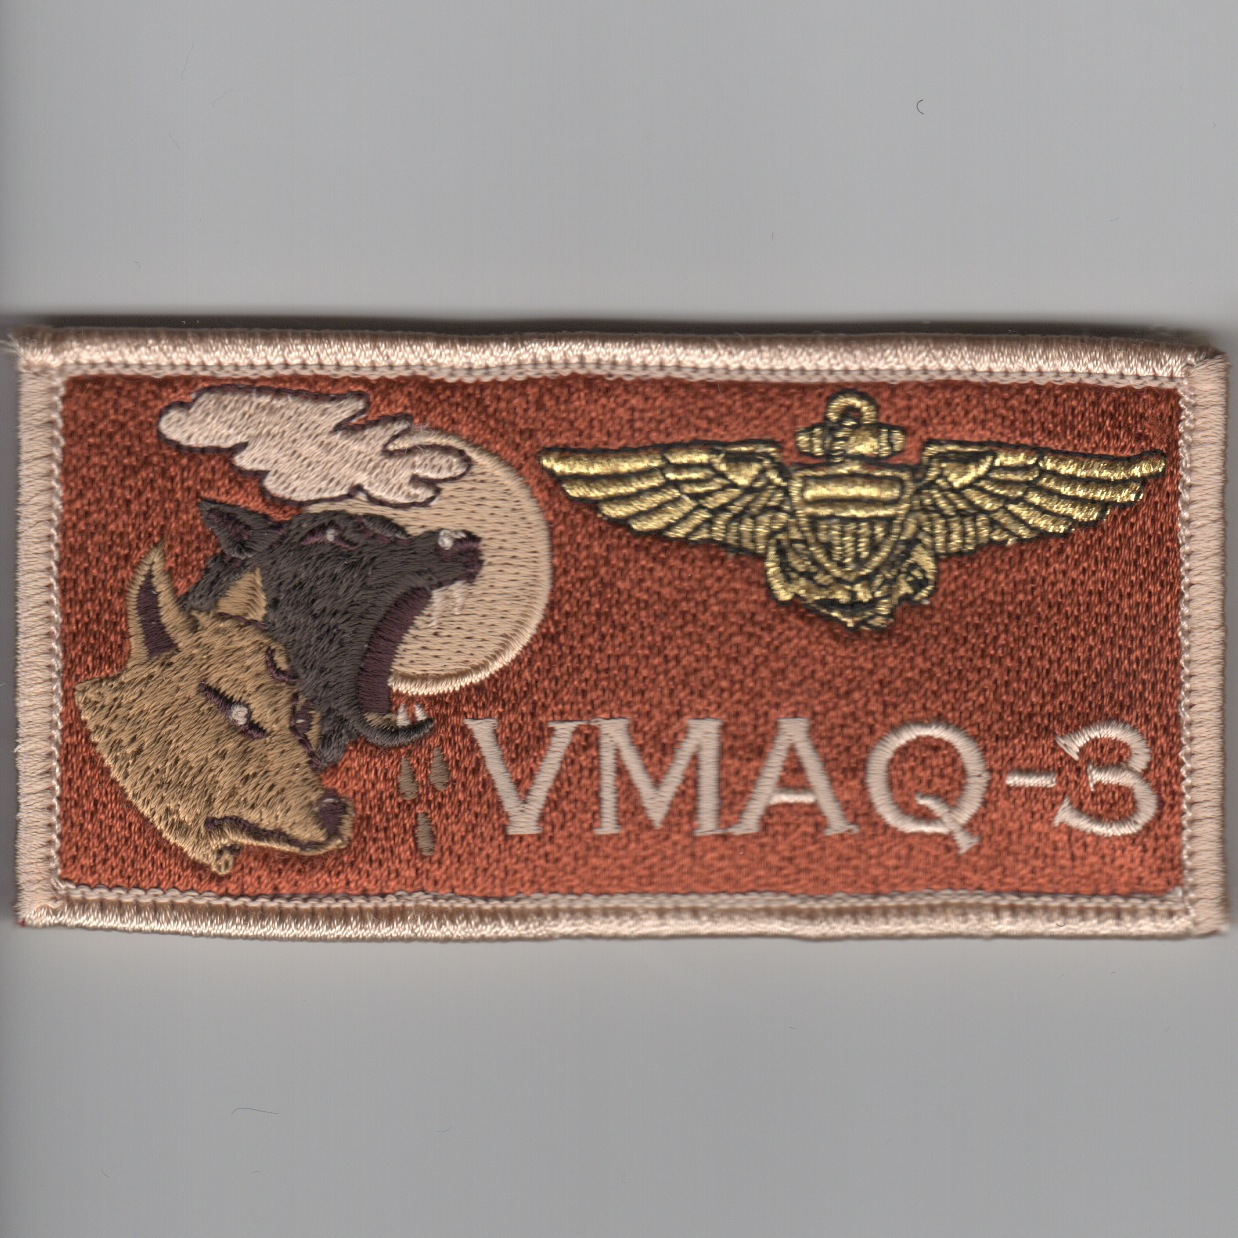 'VMAQ-3' Pilot Nametag ('LIGHT' Des)